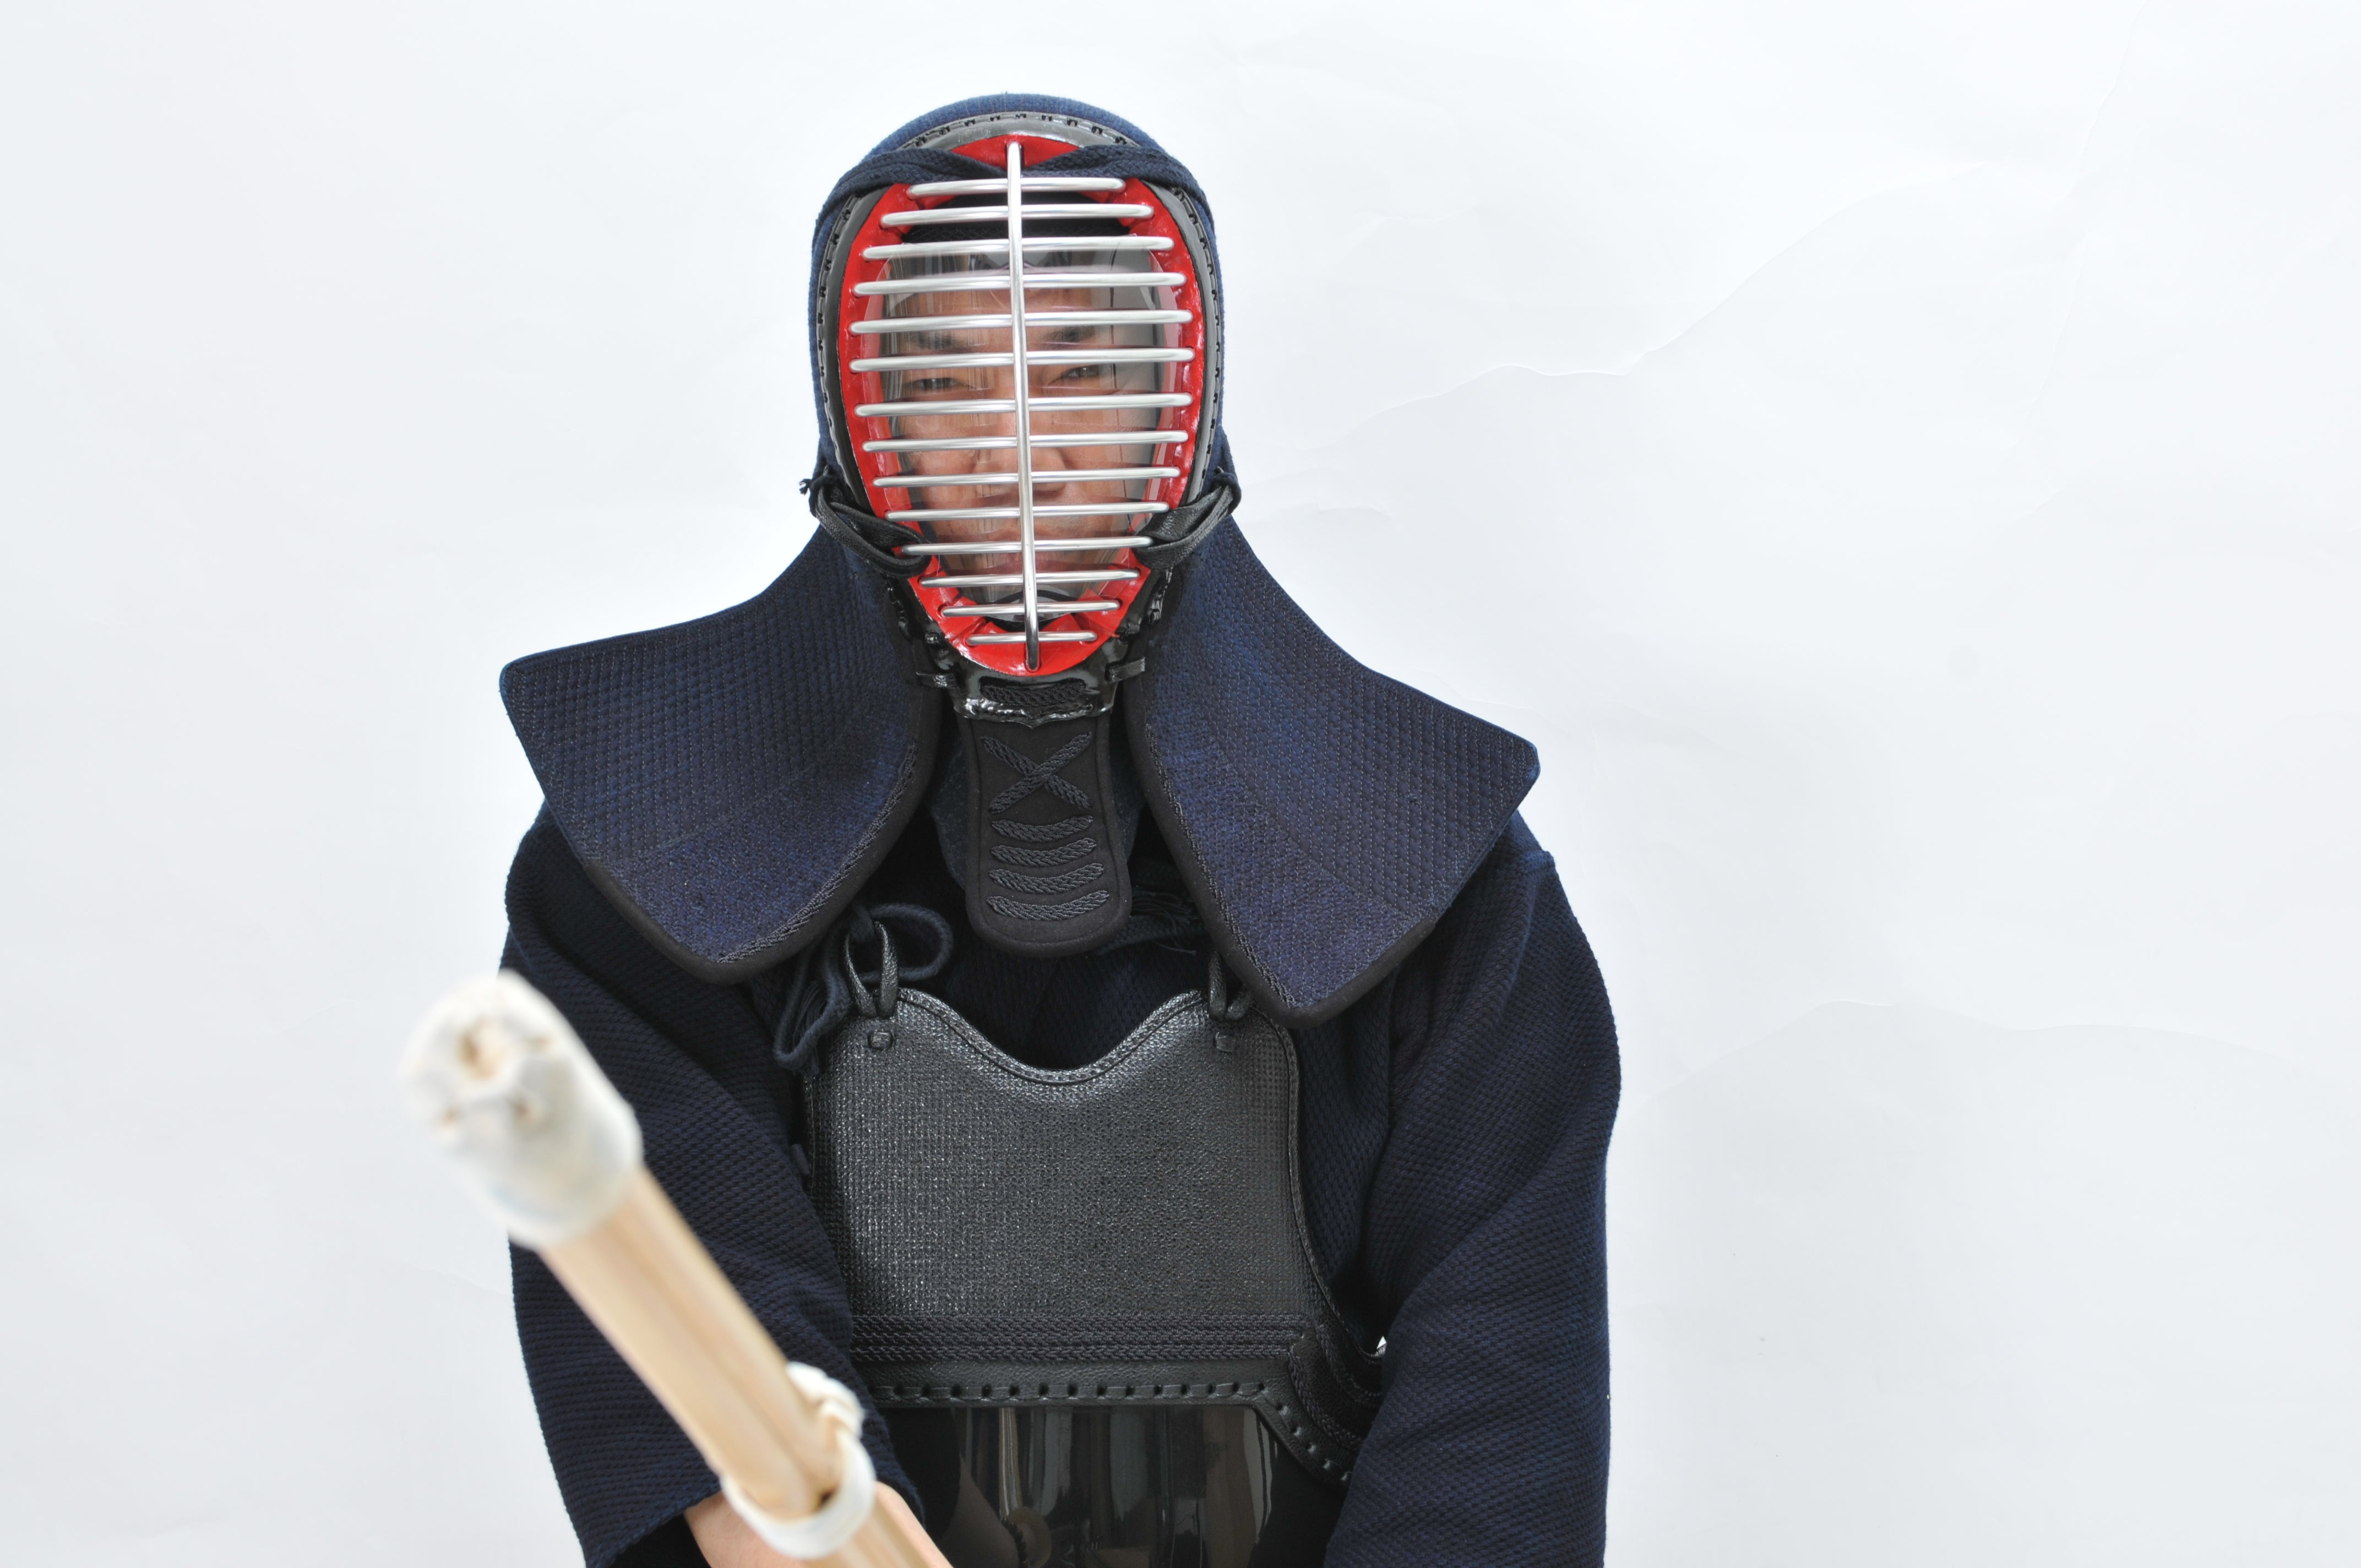 Kendo Men being worn with the Faceguard attached.